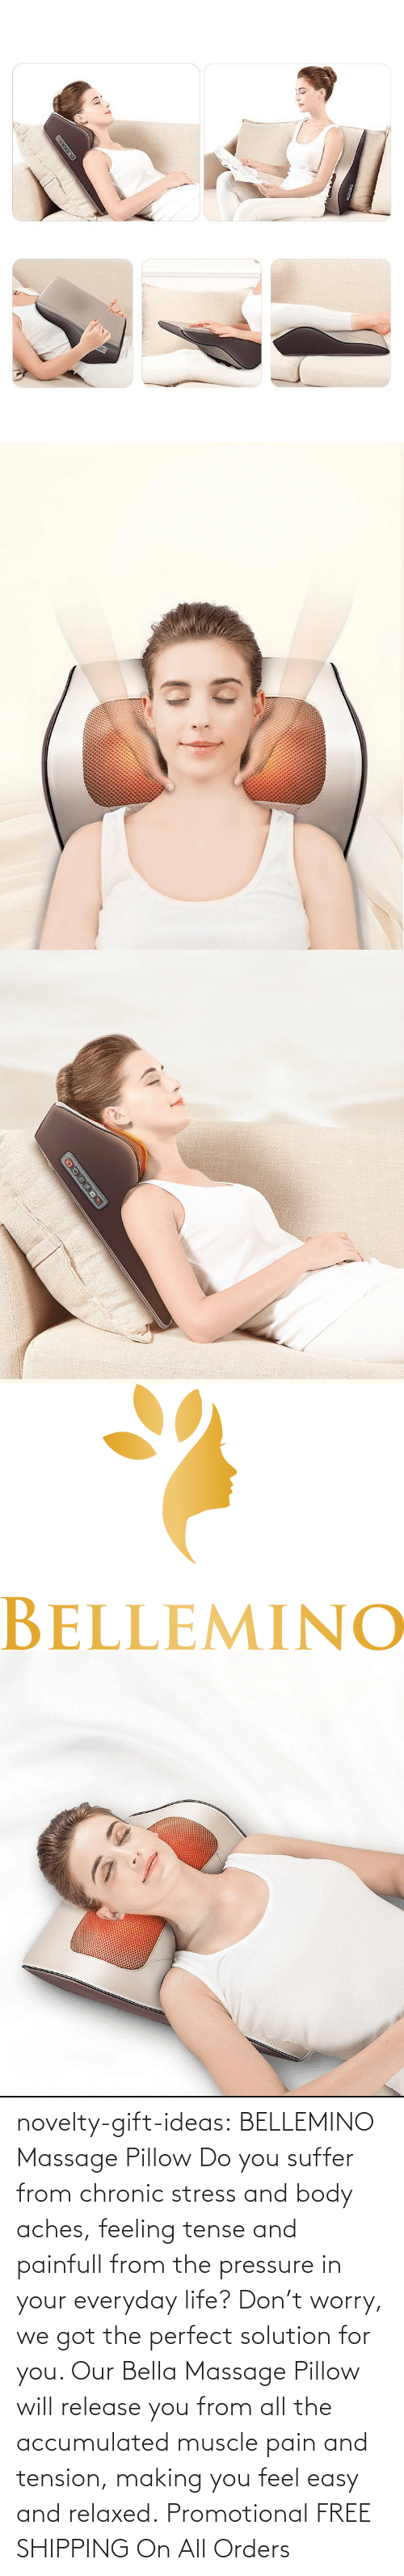 muscle: novelty-gift-ideas:   BELLEMINO Massage Pillow     Do you suffer from chronic stress and body aches, feeling tense and painfull from the pressure in your everyday life? Don't worry, we got the perfect solution for you. Our Bella Massage Pillow will release you from all the accumulated muscle pain and tension, making you feel easy and relaxed.     Promotional FREE SHIPPING On All Orders